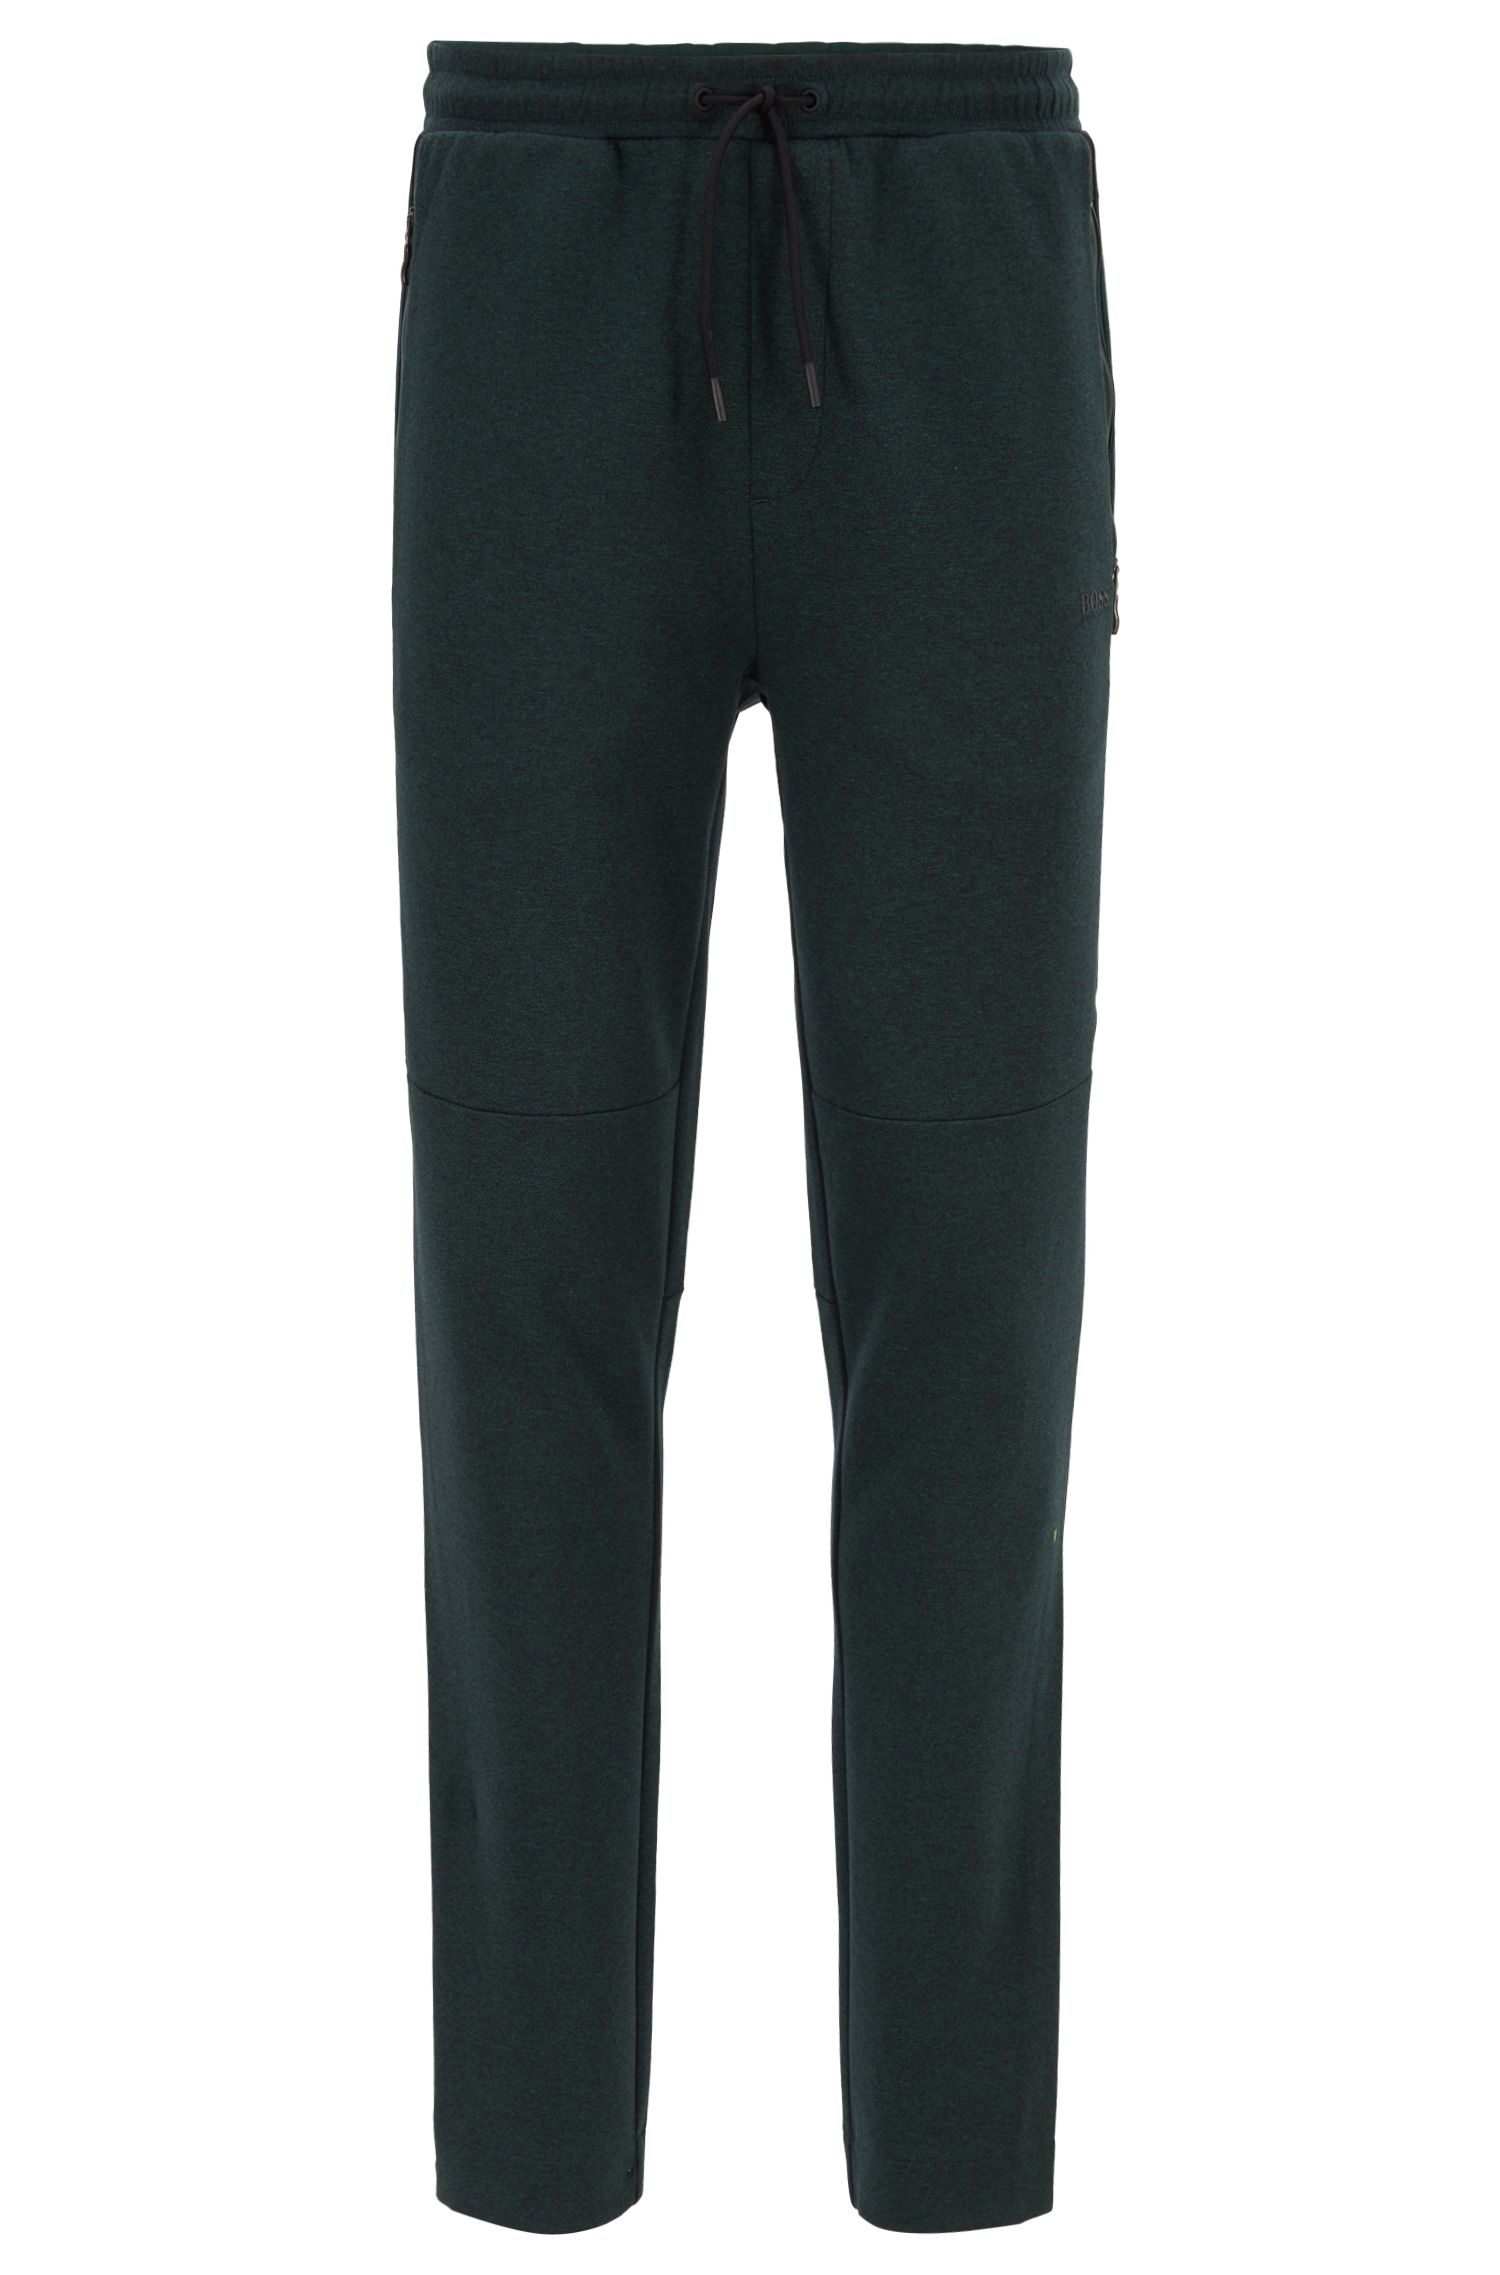 Slim-fit mouliné jersey trousers with tape details, Dark Green